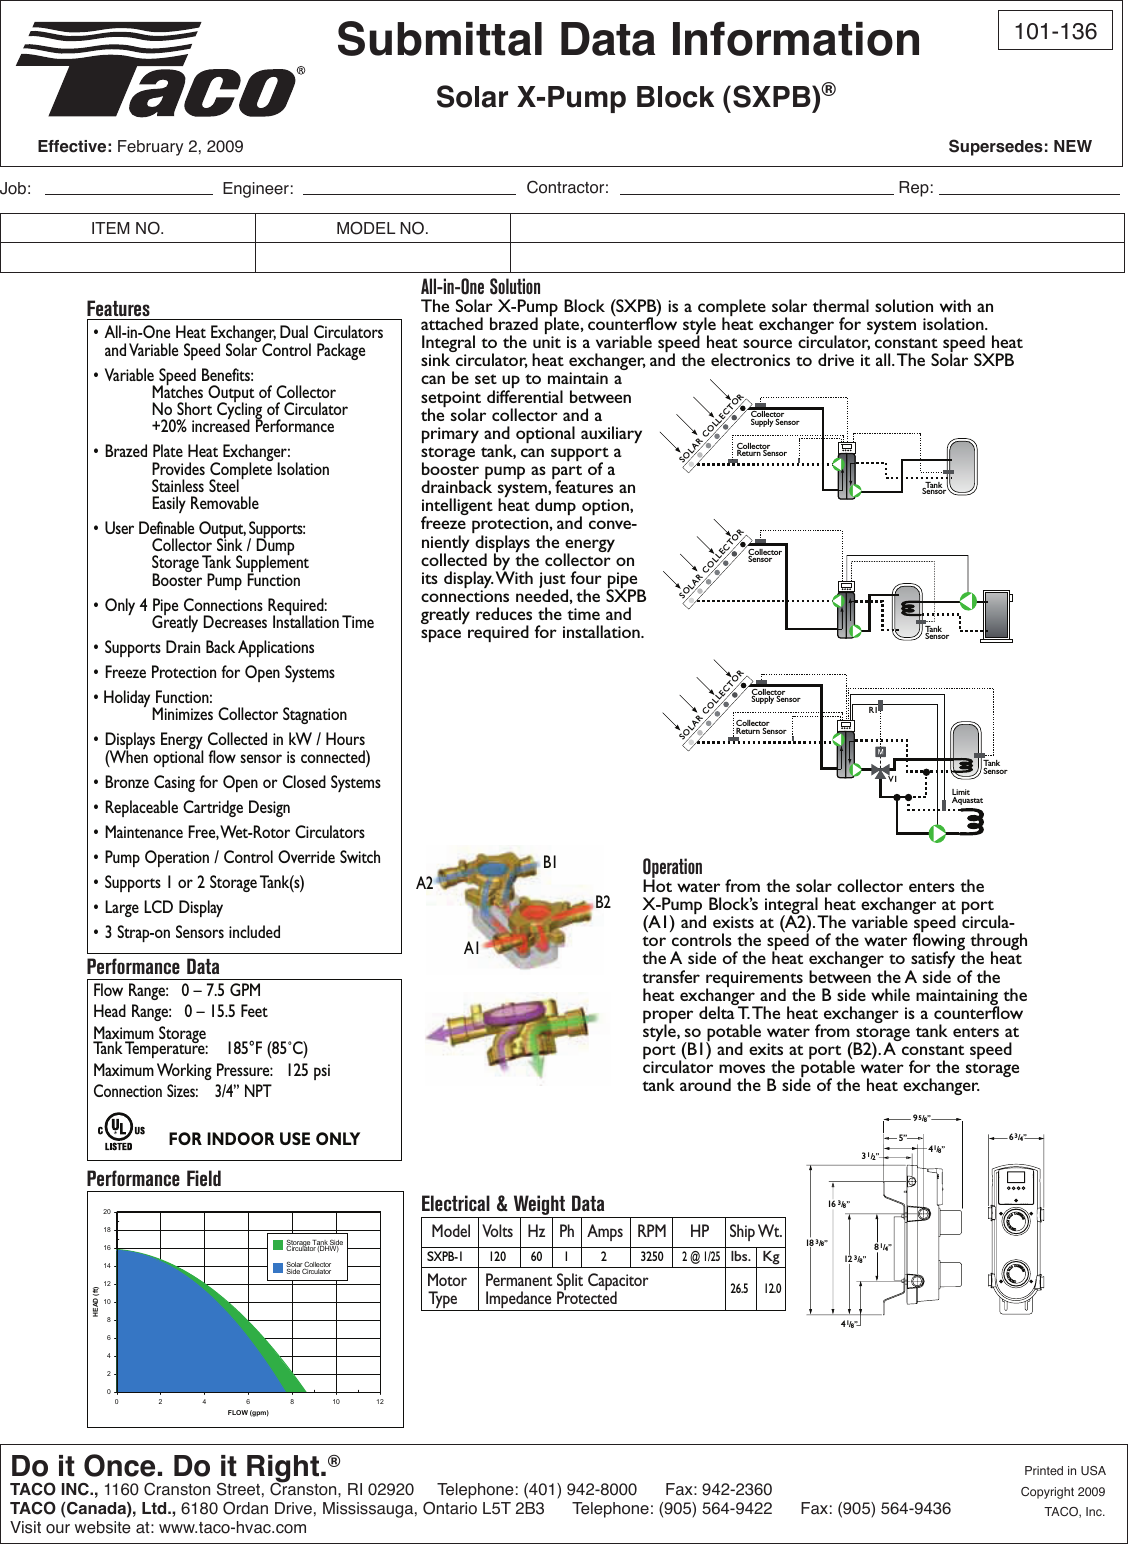 13278 3 Taco Sxpb 1 Submittal User Manual